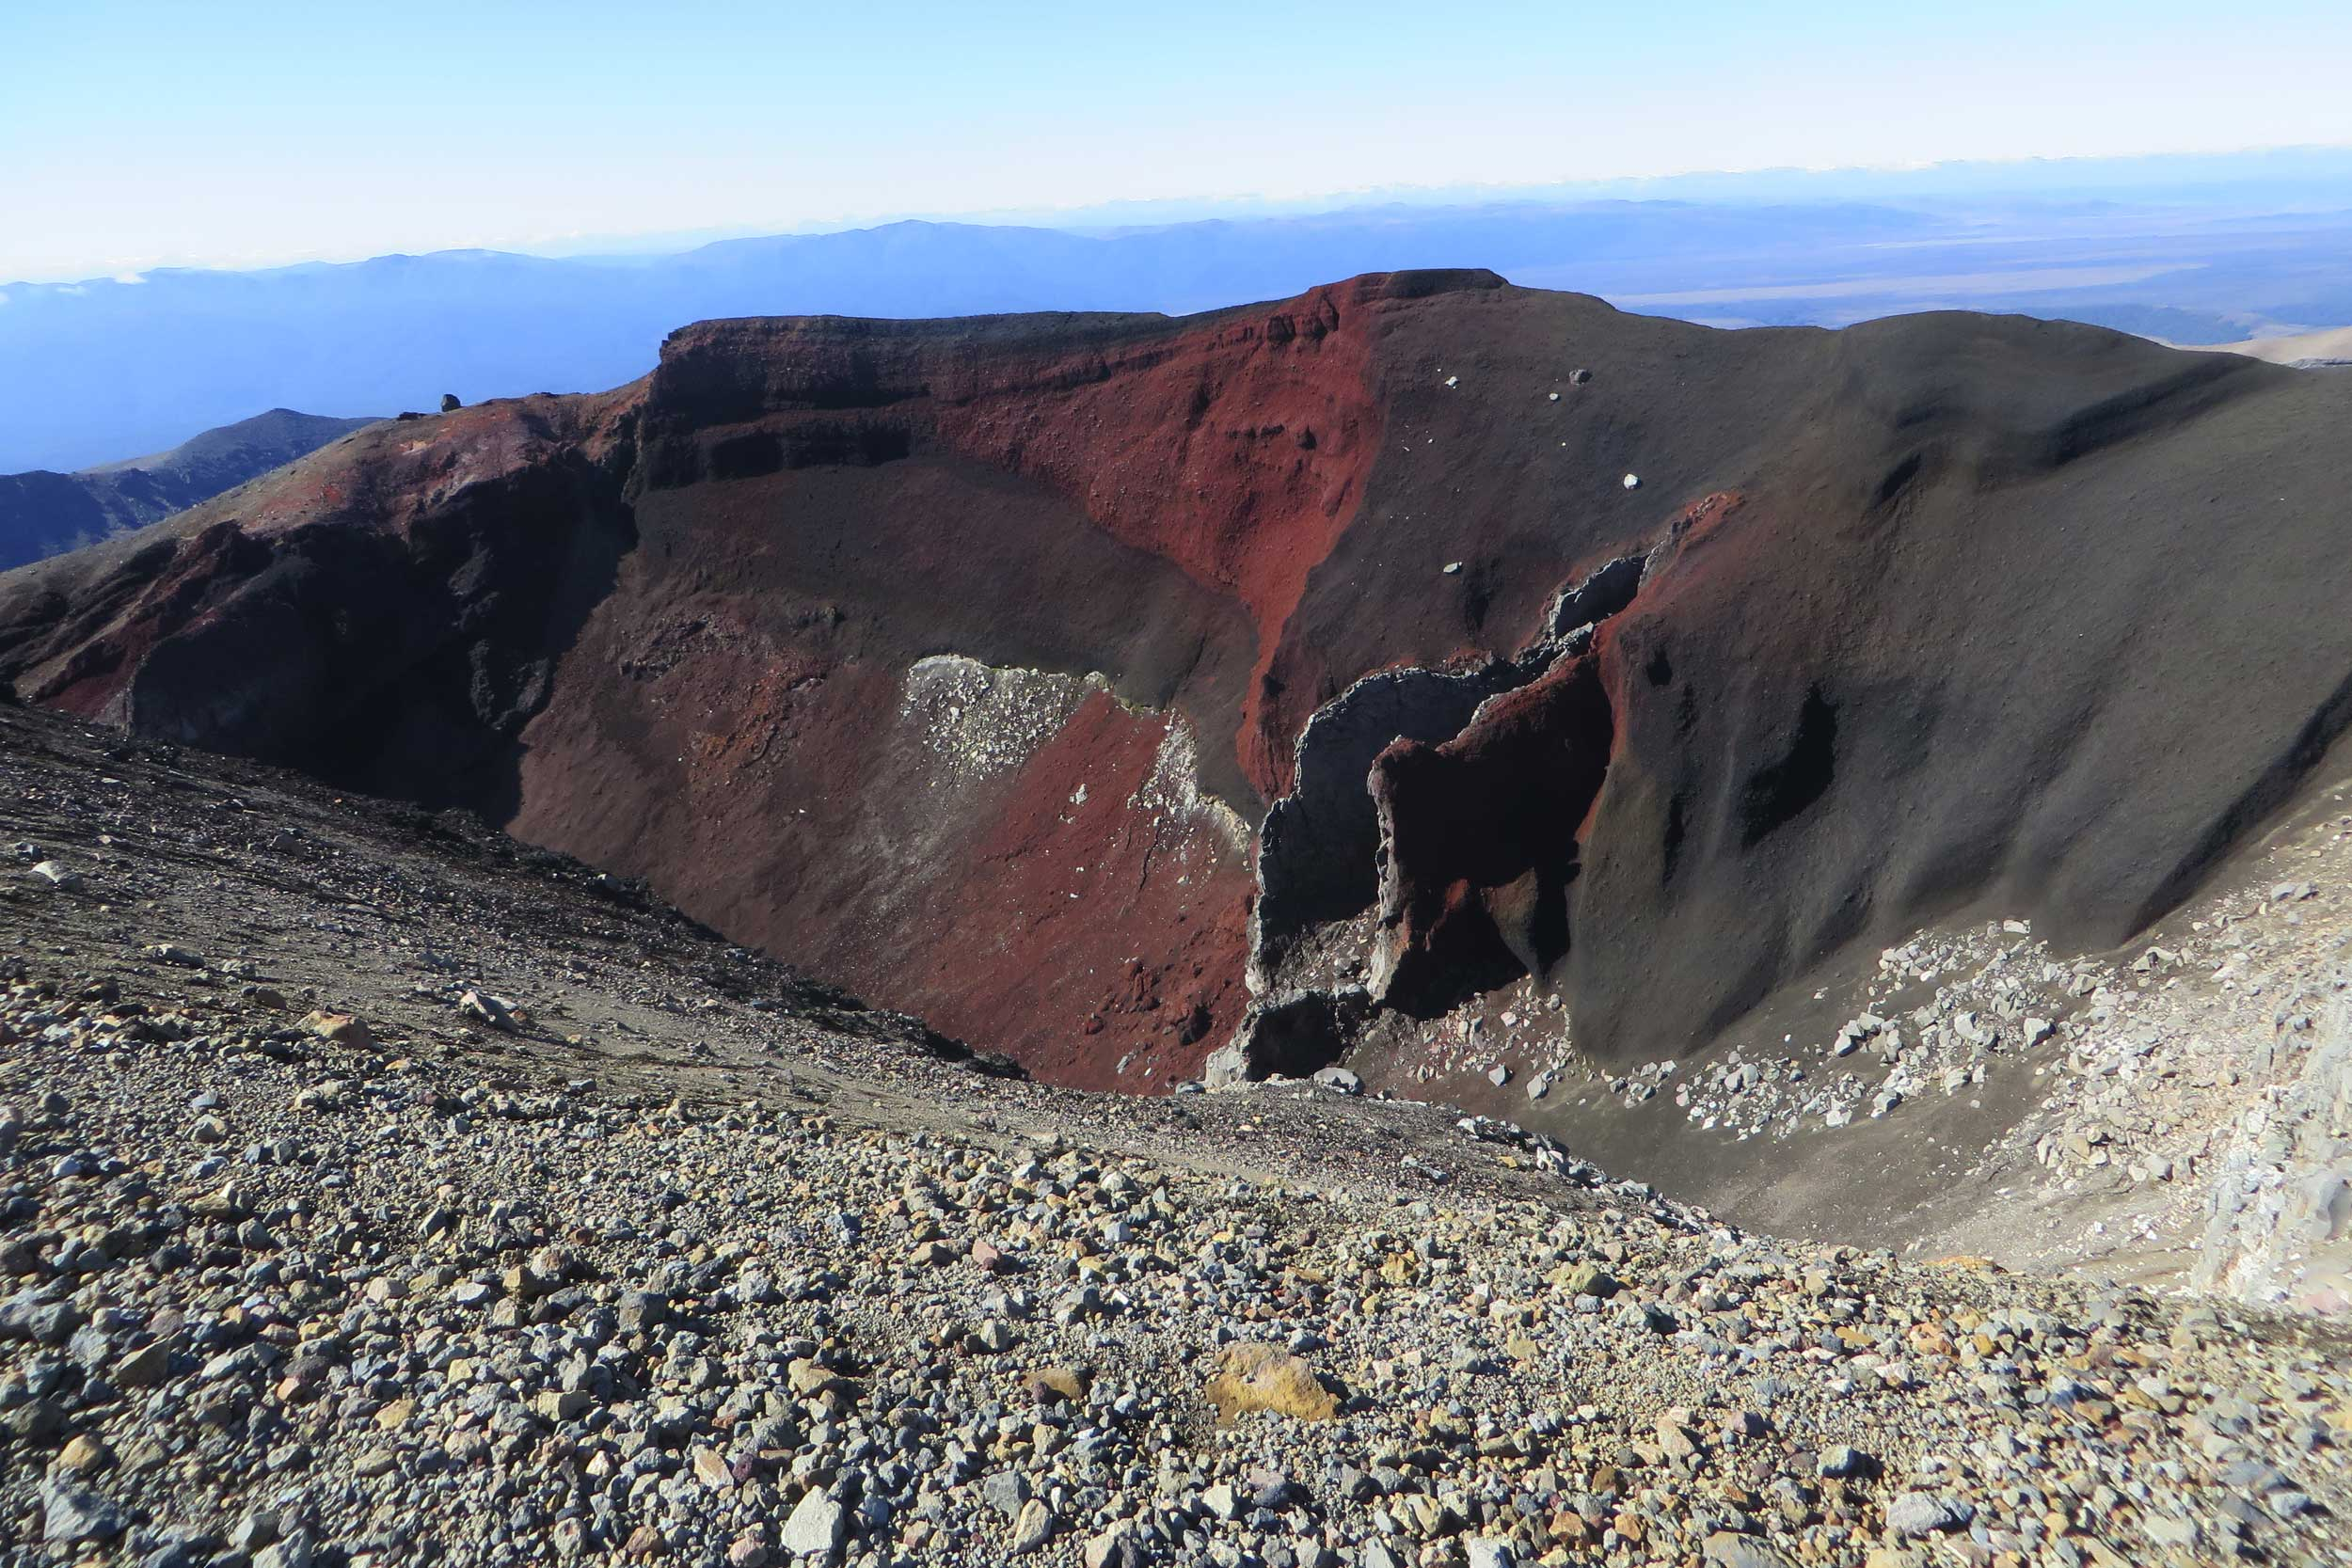 A crater with red streaked sides, Tongariro, New Zealand